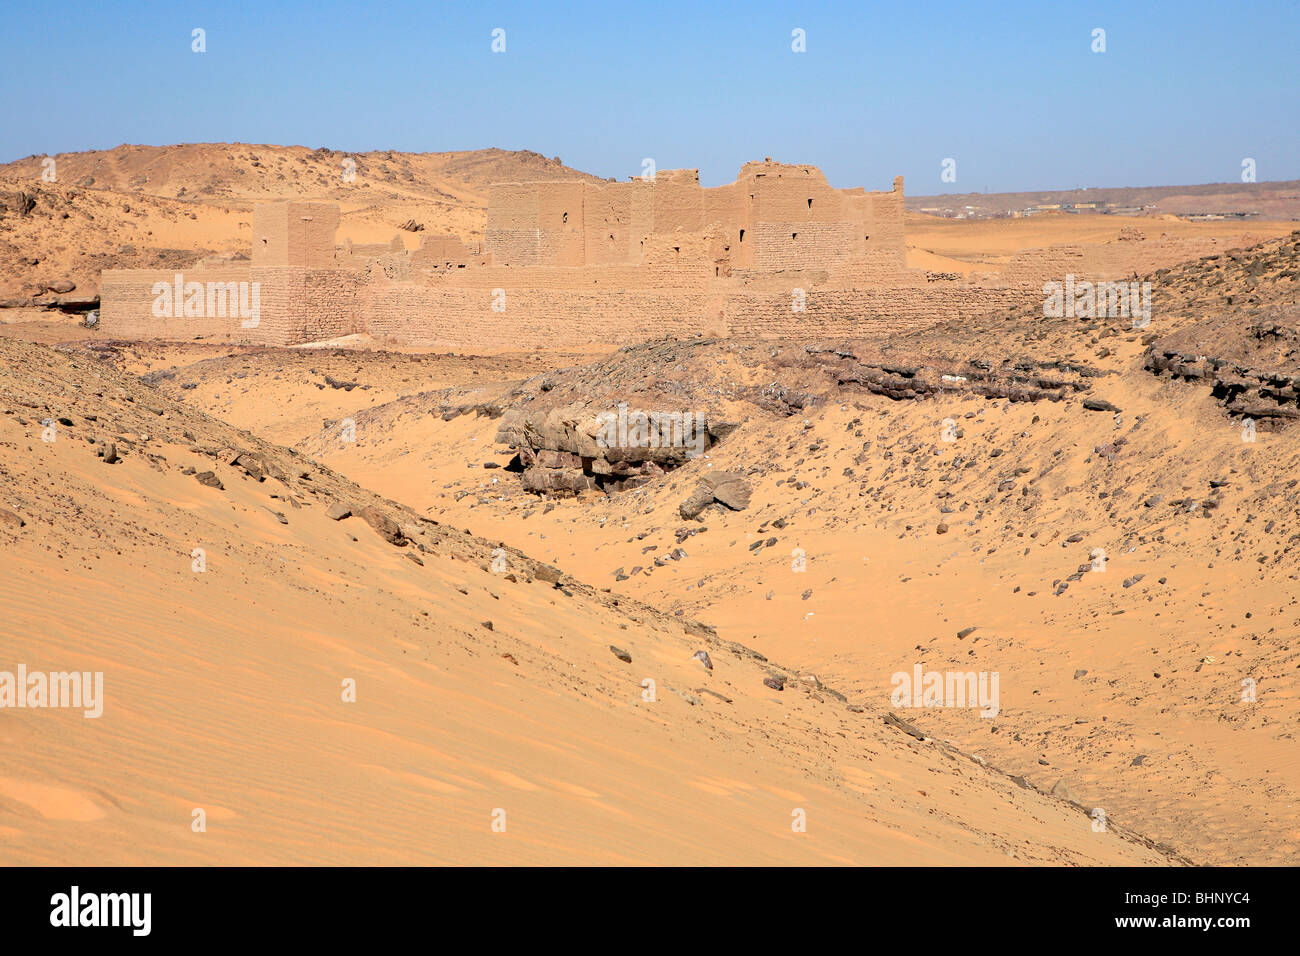 Monastery Of Saint Simeon in the middle of the desert on the west bank of Aswan, Egypt - Stock Image